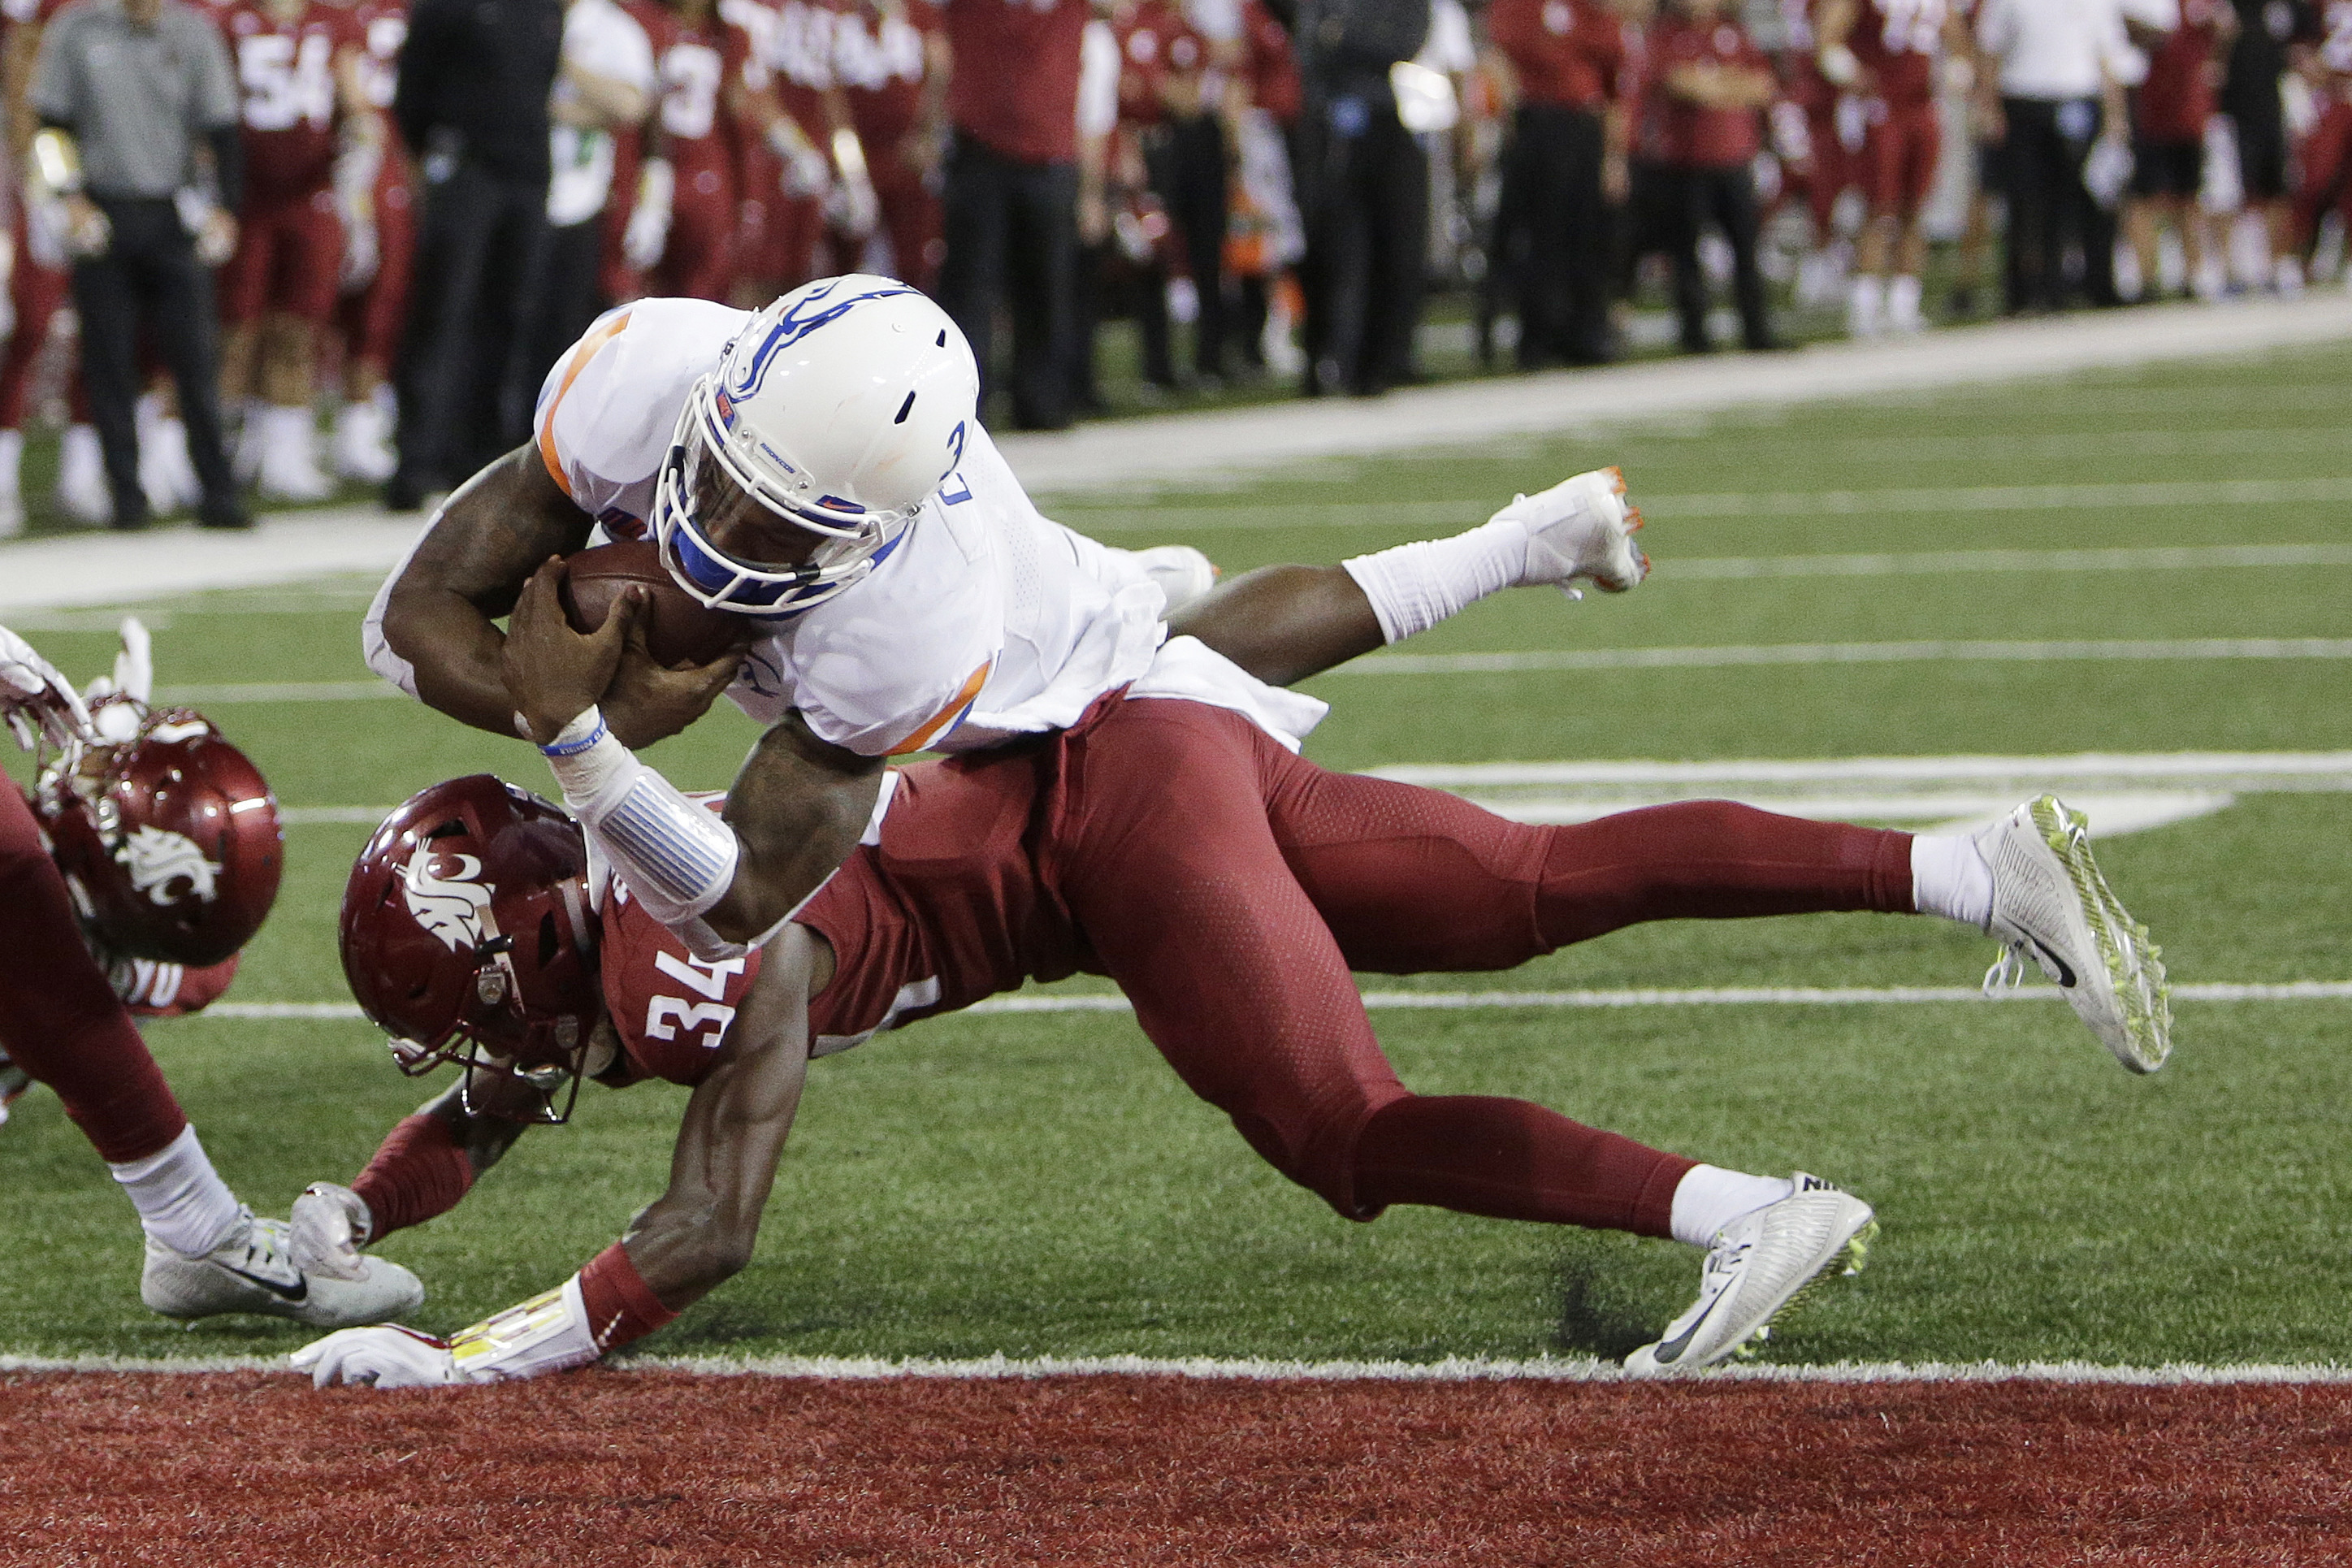 Boise State quarterback Montell Cozart, top, dives for a touchdown over Washington State safety Jalen Thompson (34) during the second half of an NCAA college football game in Pullman, Wash., Saturday, Sept. 9, 2017. Washington State won 47-44. (AP Photo/Young Kwak)